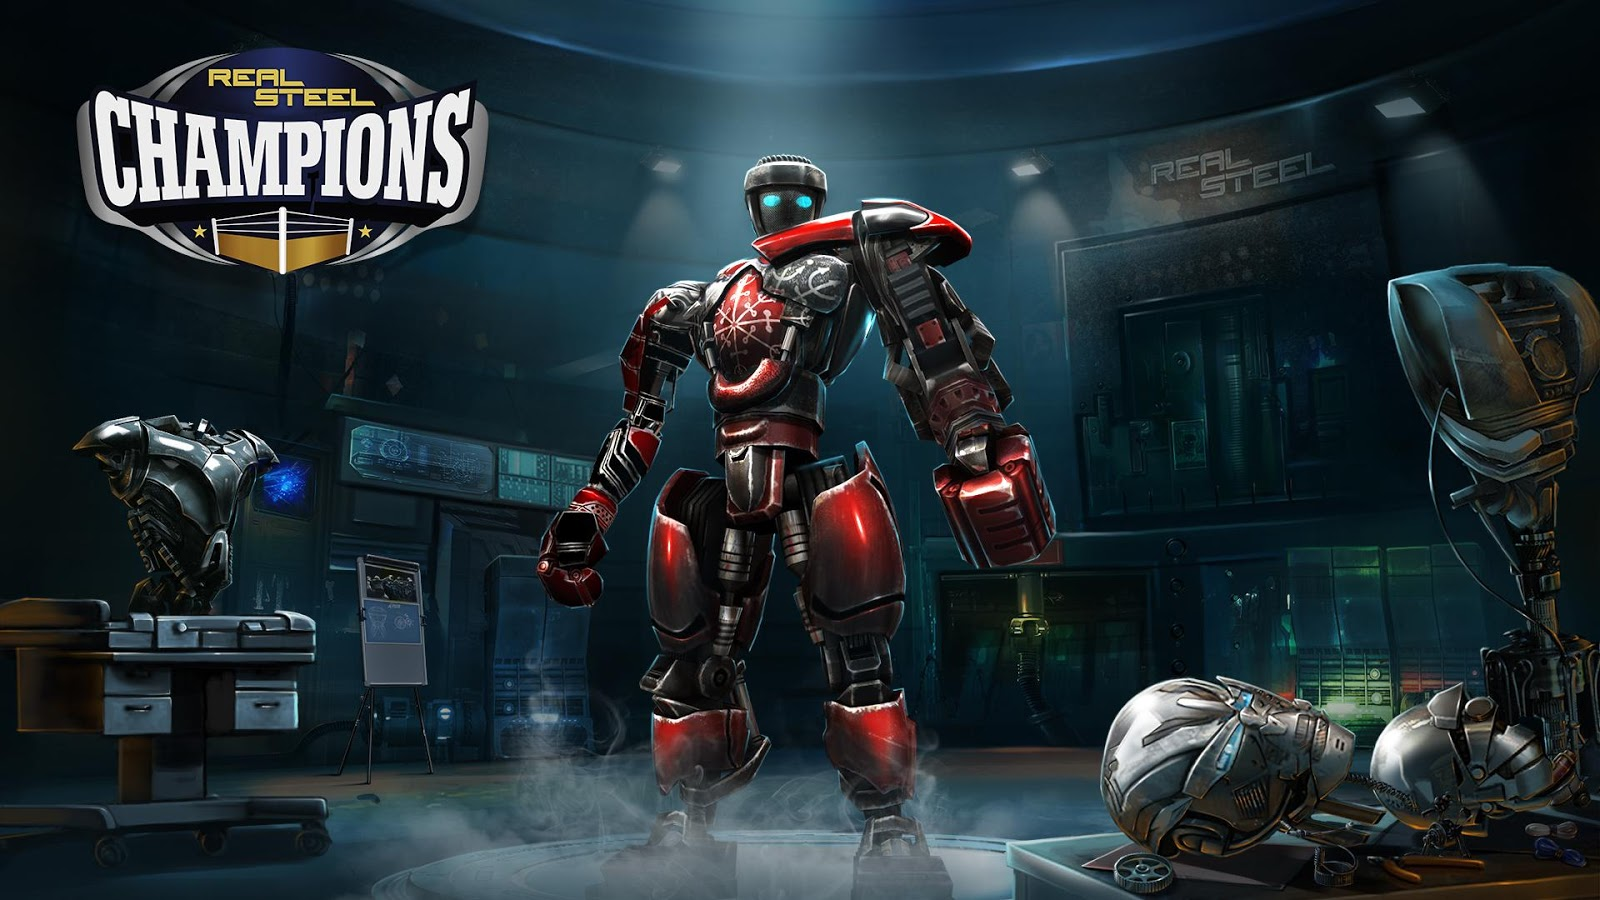 Real Steel Champions 1